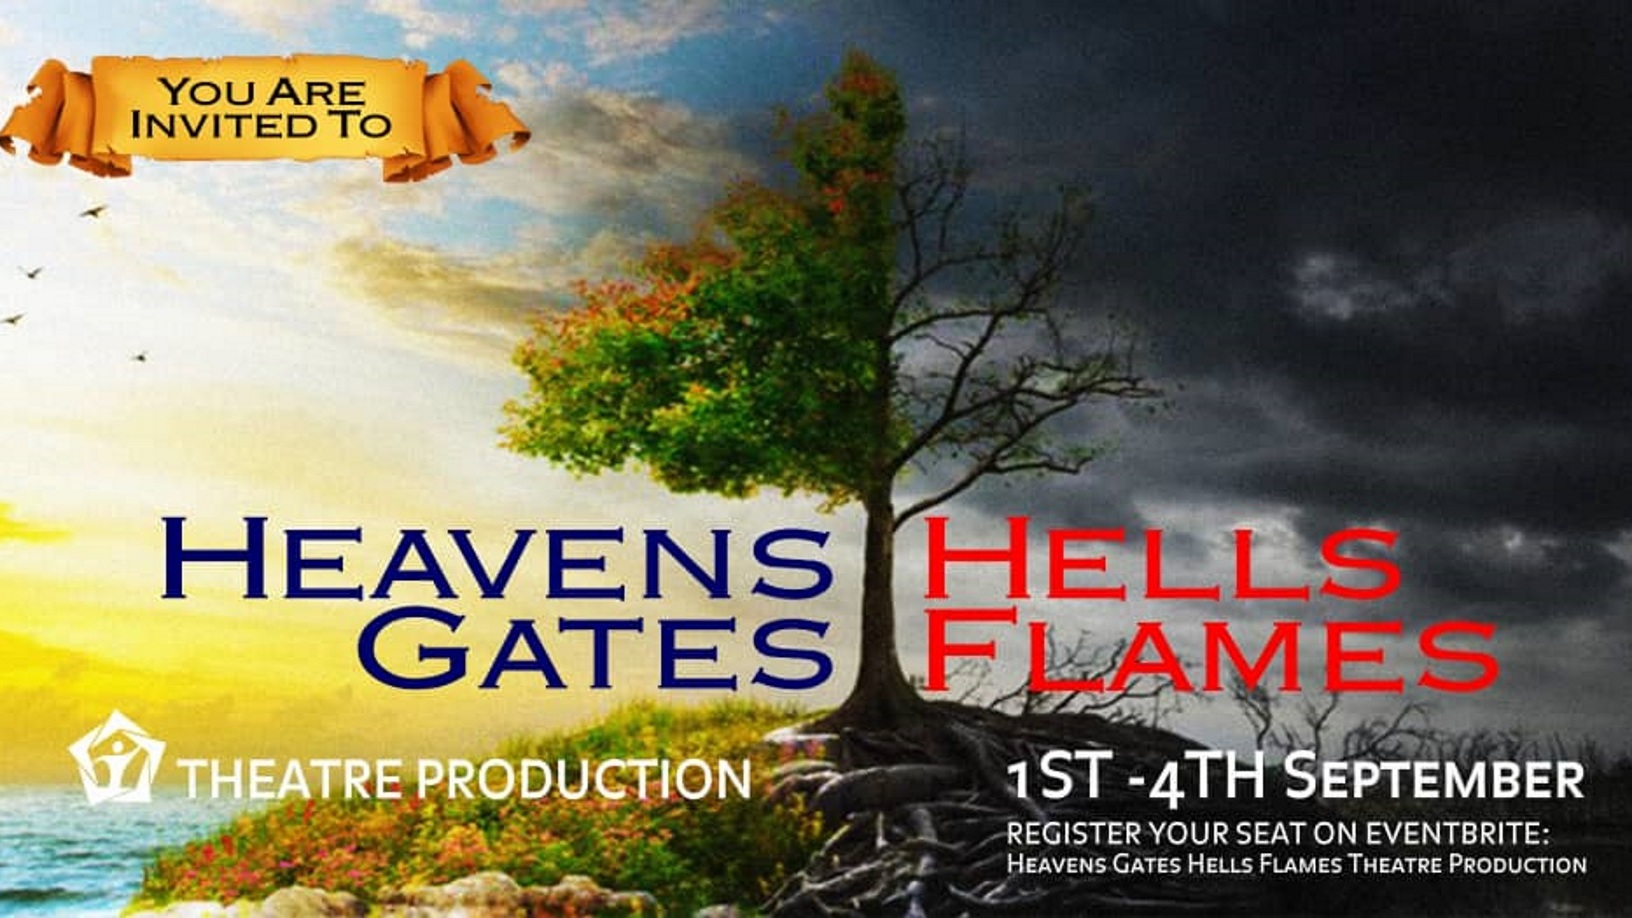 Heaven's Gate &Hell's Flames - Heaven's Gates & Hell's Flames is a powerful, dramatic presentation of the Gospel message, combining ageless, biblical truth with modern sound, lighting and multimedia effects. Combined with an incredible stage set, this incredible theater production is not to be missed.- Due to subject matter, parental guidance advisedRaffle Prizes:Fantastic Giveaways each night! In order to have a chance, you must register on Eventbrite. Winners will be announced each night!Doors Open: 6.30pm each night.Show Begins: 7.00pmPerformance Days:Sunday 1st SeptemberMonday 2nd SeptemberTuesday 3rd SeptemberWednesday 4th September- Please register for all days you plan on attending